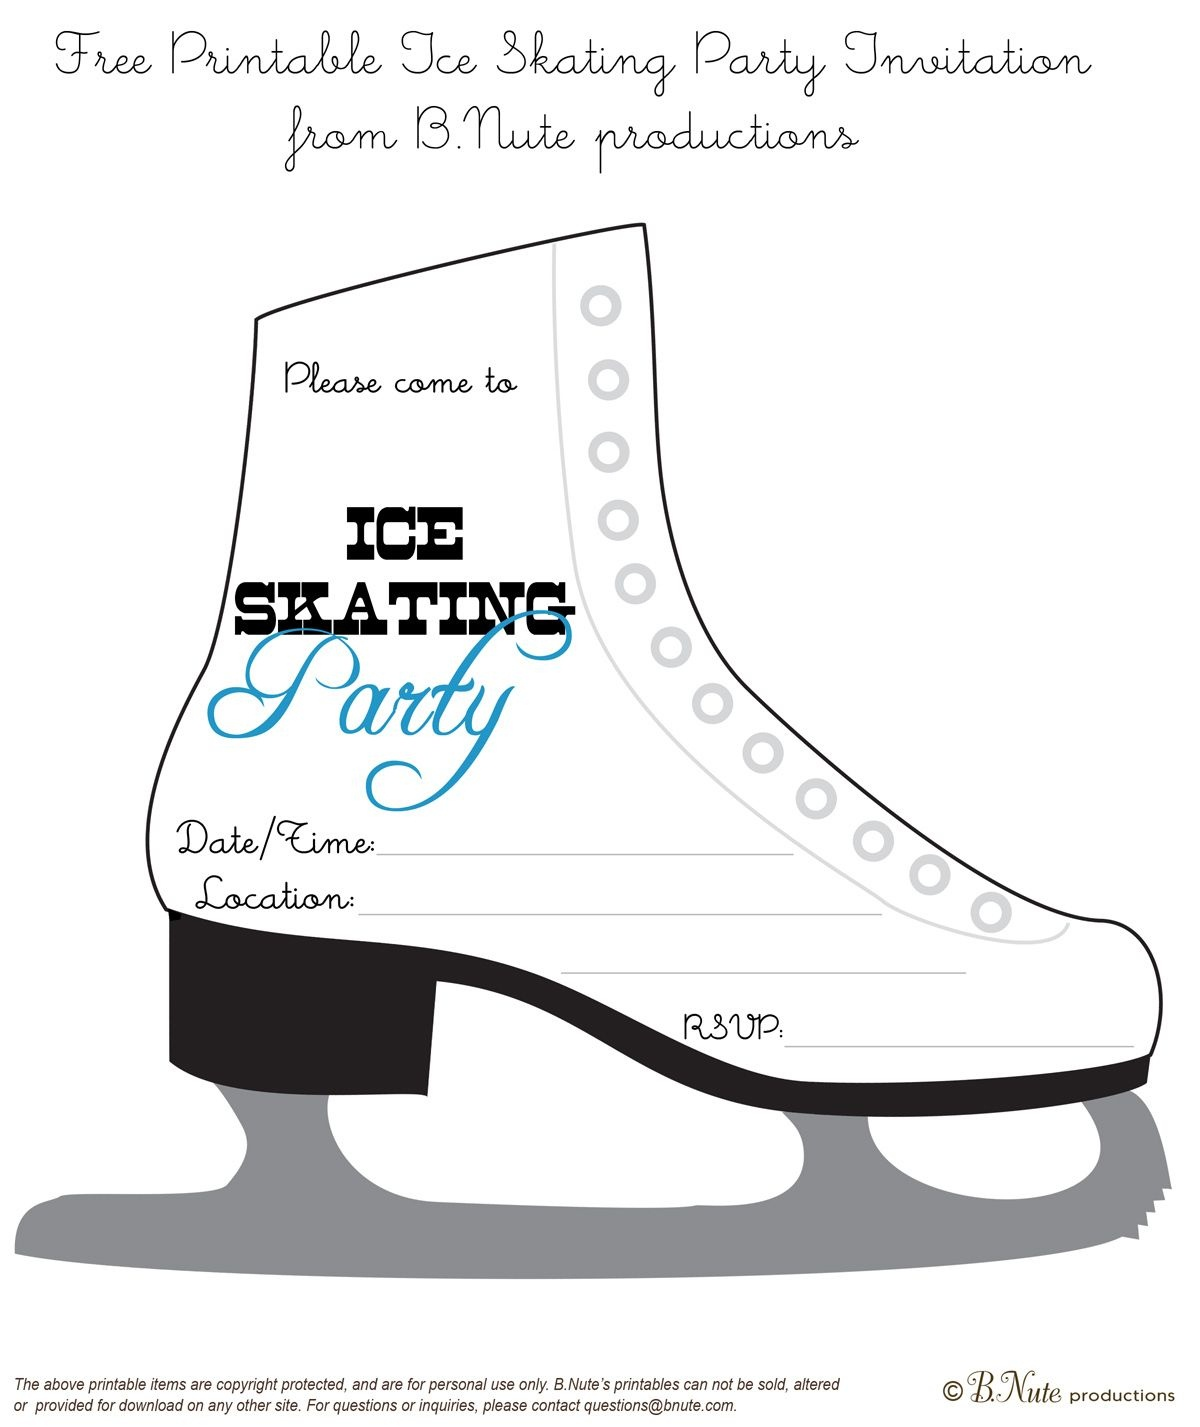 Bnute Productions: Free Printable Ice Skating Party Invitation - Free Printable Skating Invitations